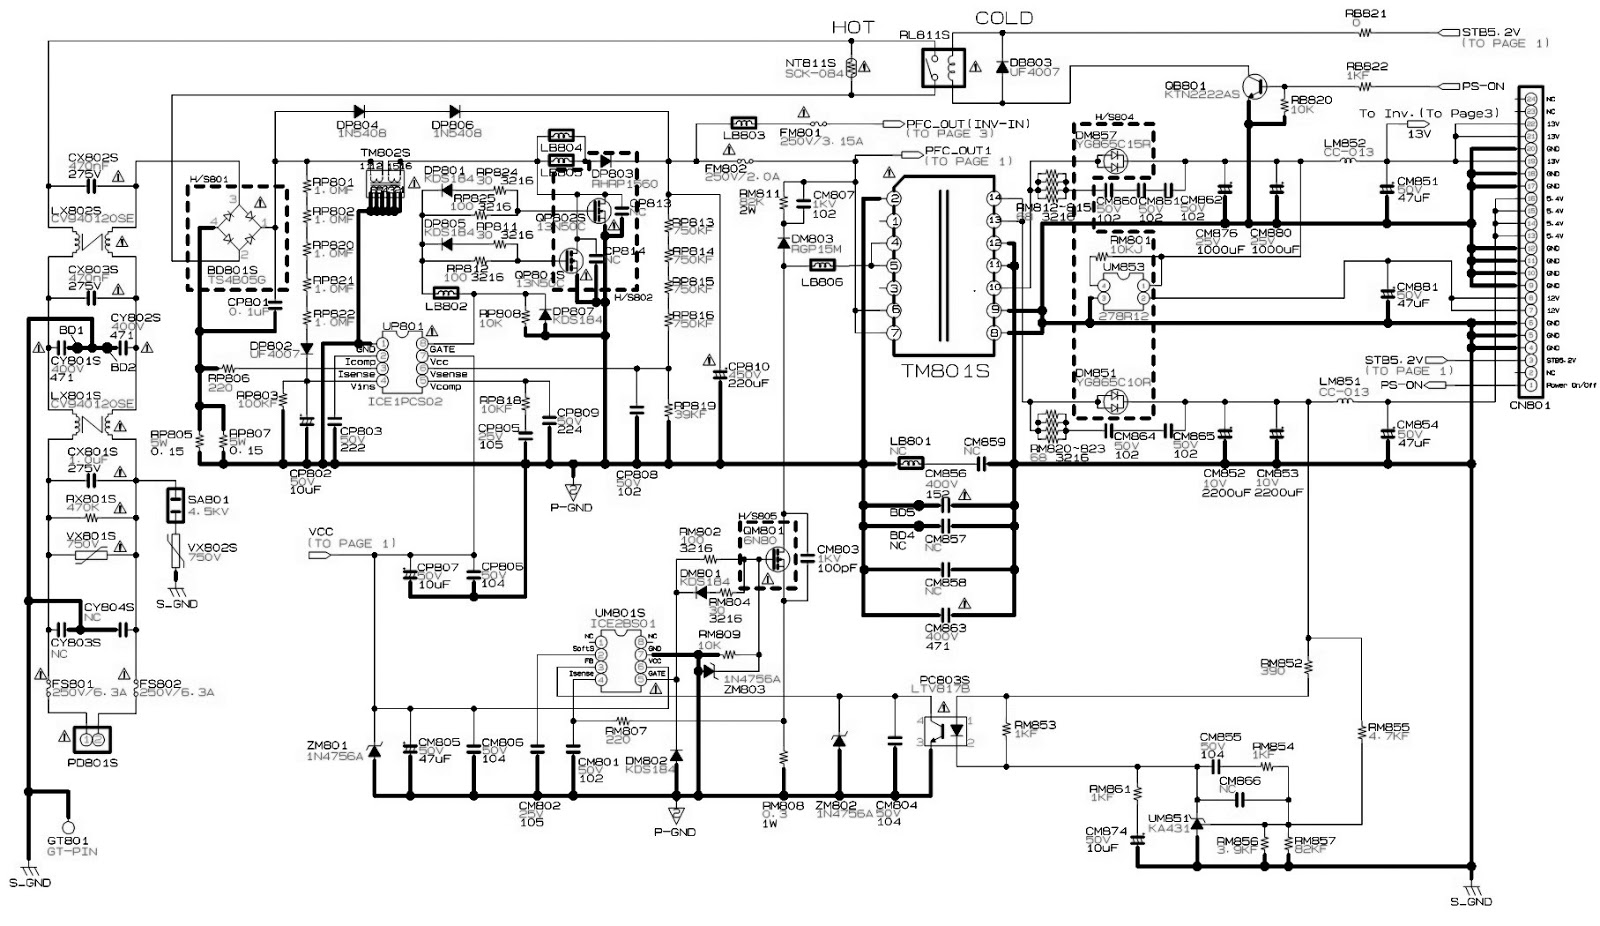 Pleasant Led Tv Circuit Diagram Samsung Diagram Data Schema Ranpur Mohammedshrine Wiring Digital Resources Ranpurmohammedshrineorg